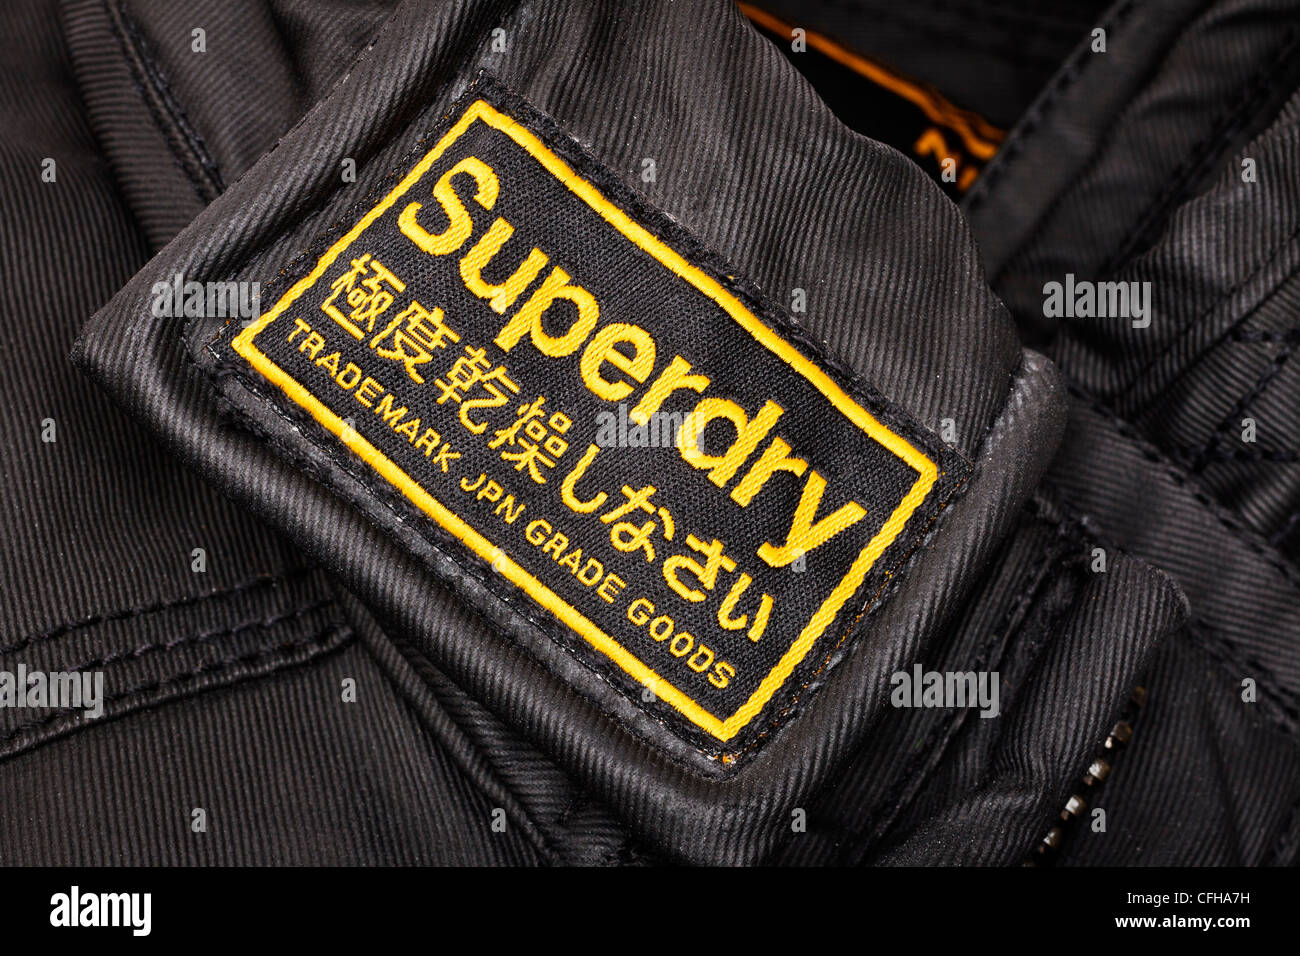 Superdry clothes brand label - Stock Image